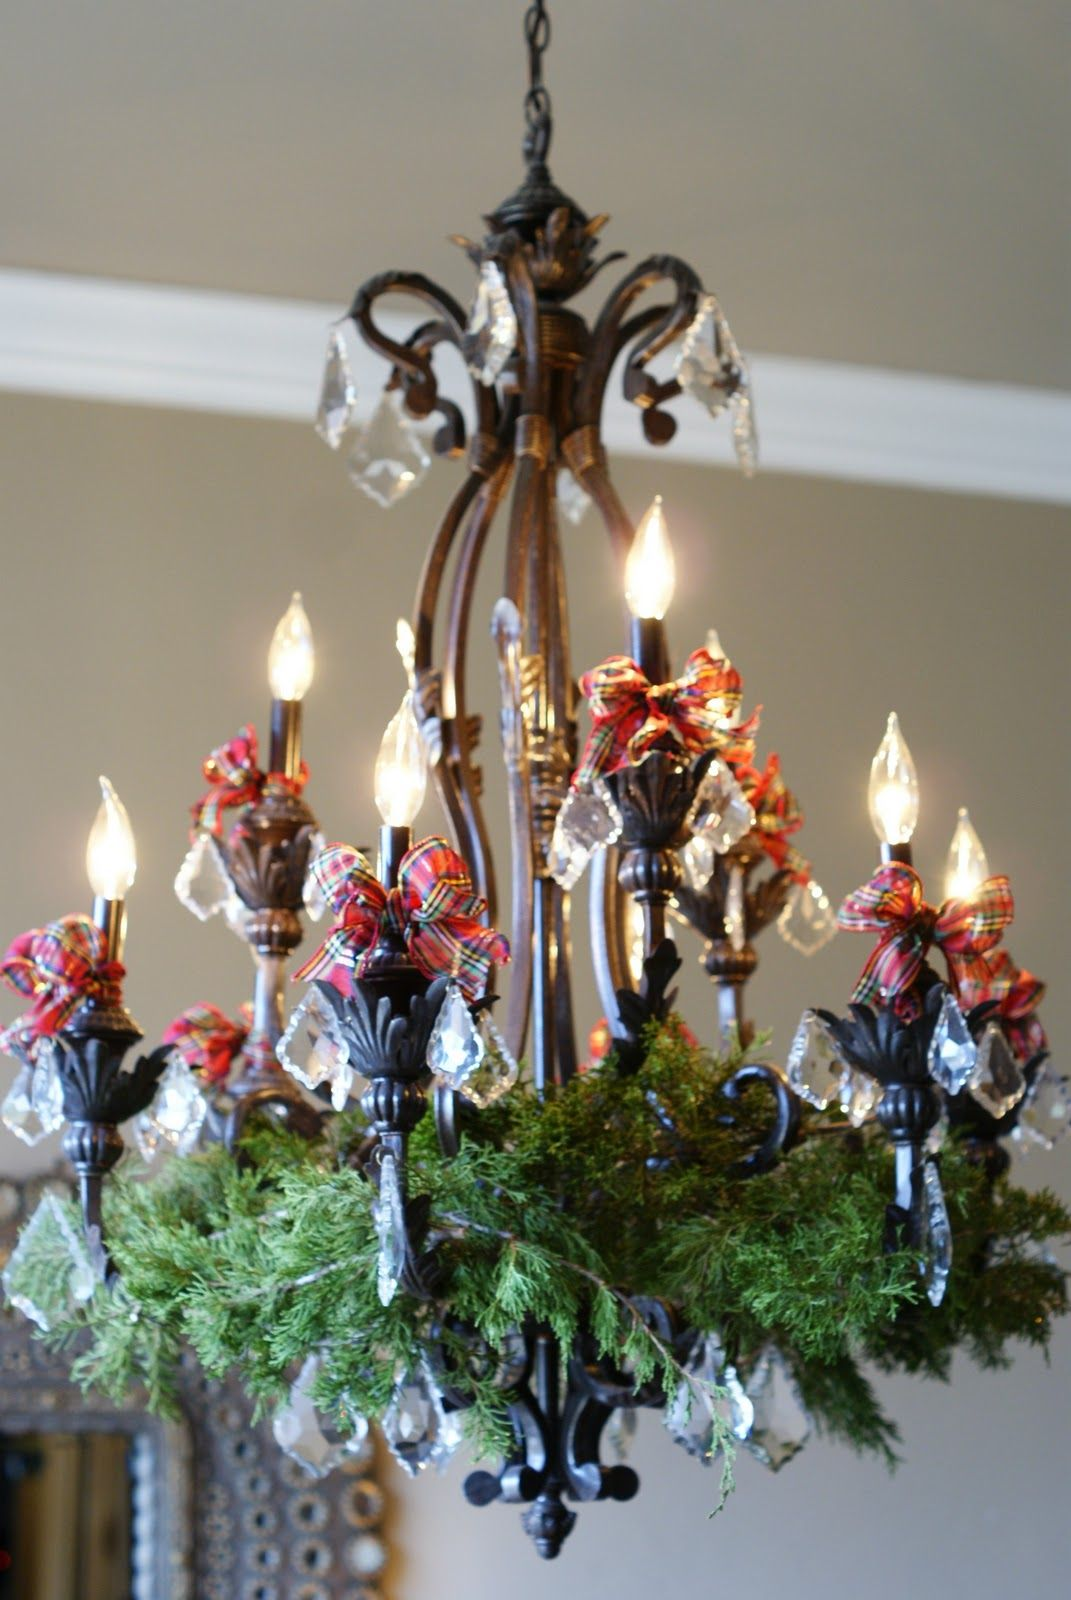 Awesome ornamented christmas chandeliers for unforgettable family awesome ornamented christmas chandeliers for unforgettable family moments christmas pinterest christmas chandelier chandeliers and christmas decor arubaitofo Image collections